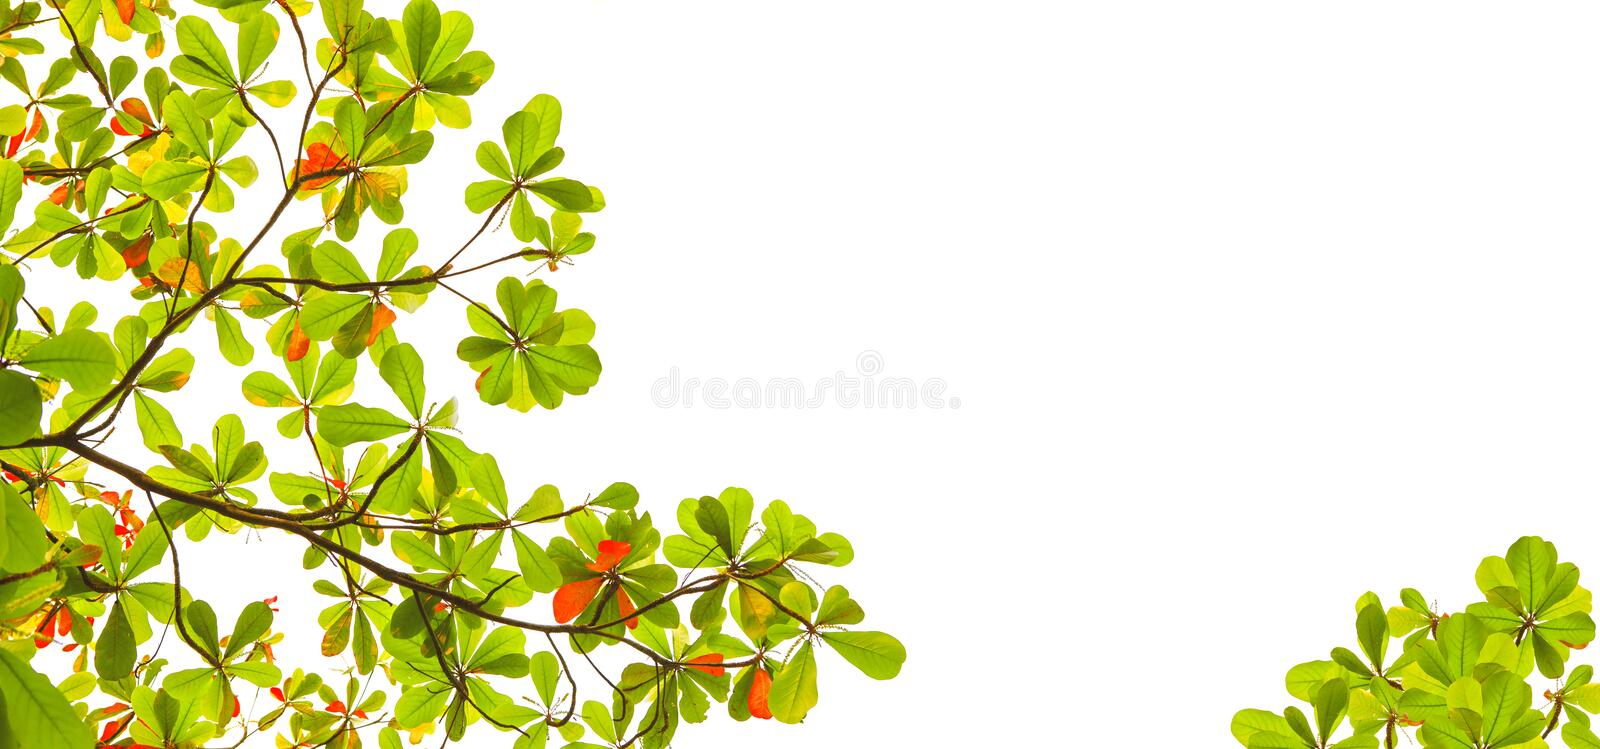 Wide form of green and red sea almond leaves with tree branch isolated on white background use as natural copy space or royalty free stock image